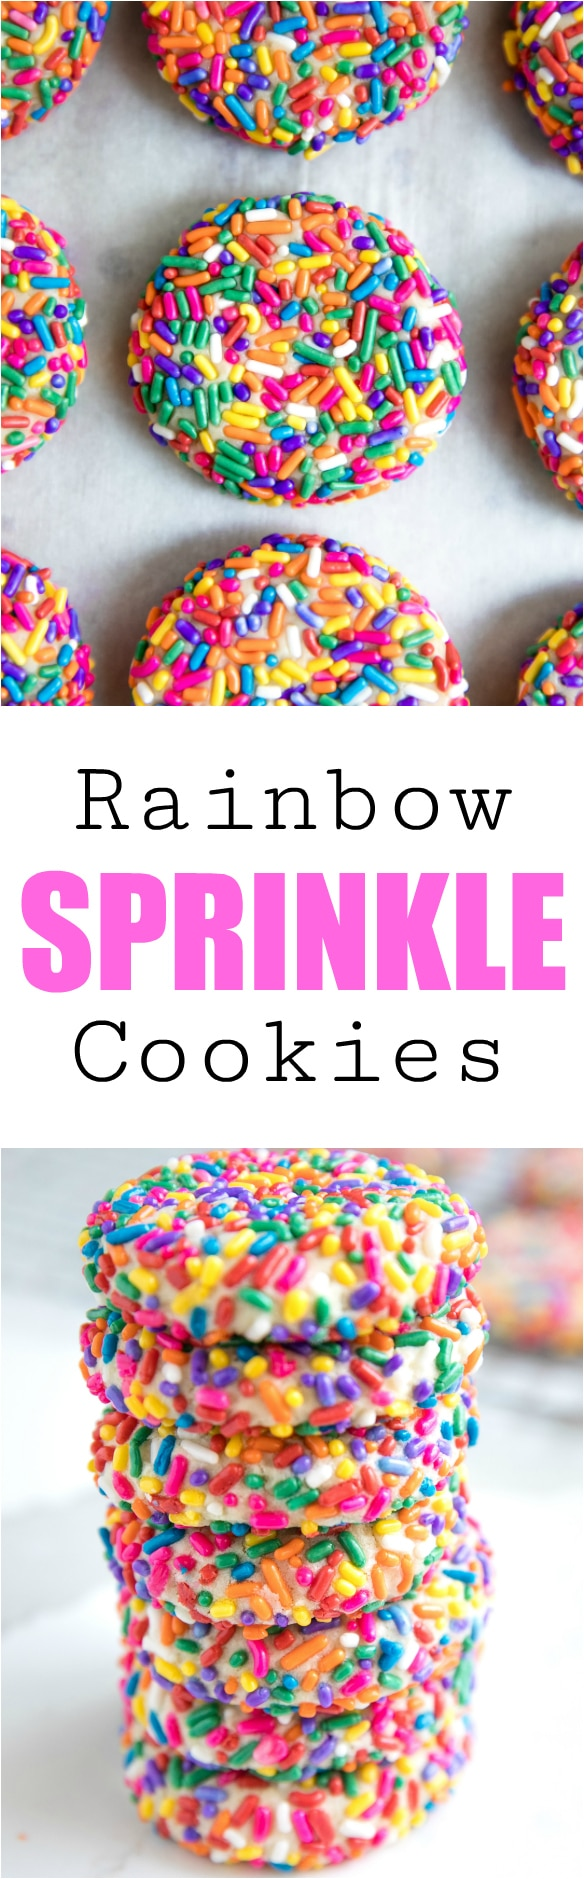 Sprinkle Confetti Cookies.  Life is always a little better with a side of cookies. Especially when those cookies are covered in rainbow sprinkles. Seriously, though, who doesn't love a good Sprinkle Confetti Cookie? #cookies #rainbows #sprinkles #dessert #fun